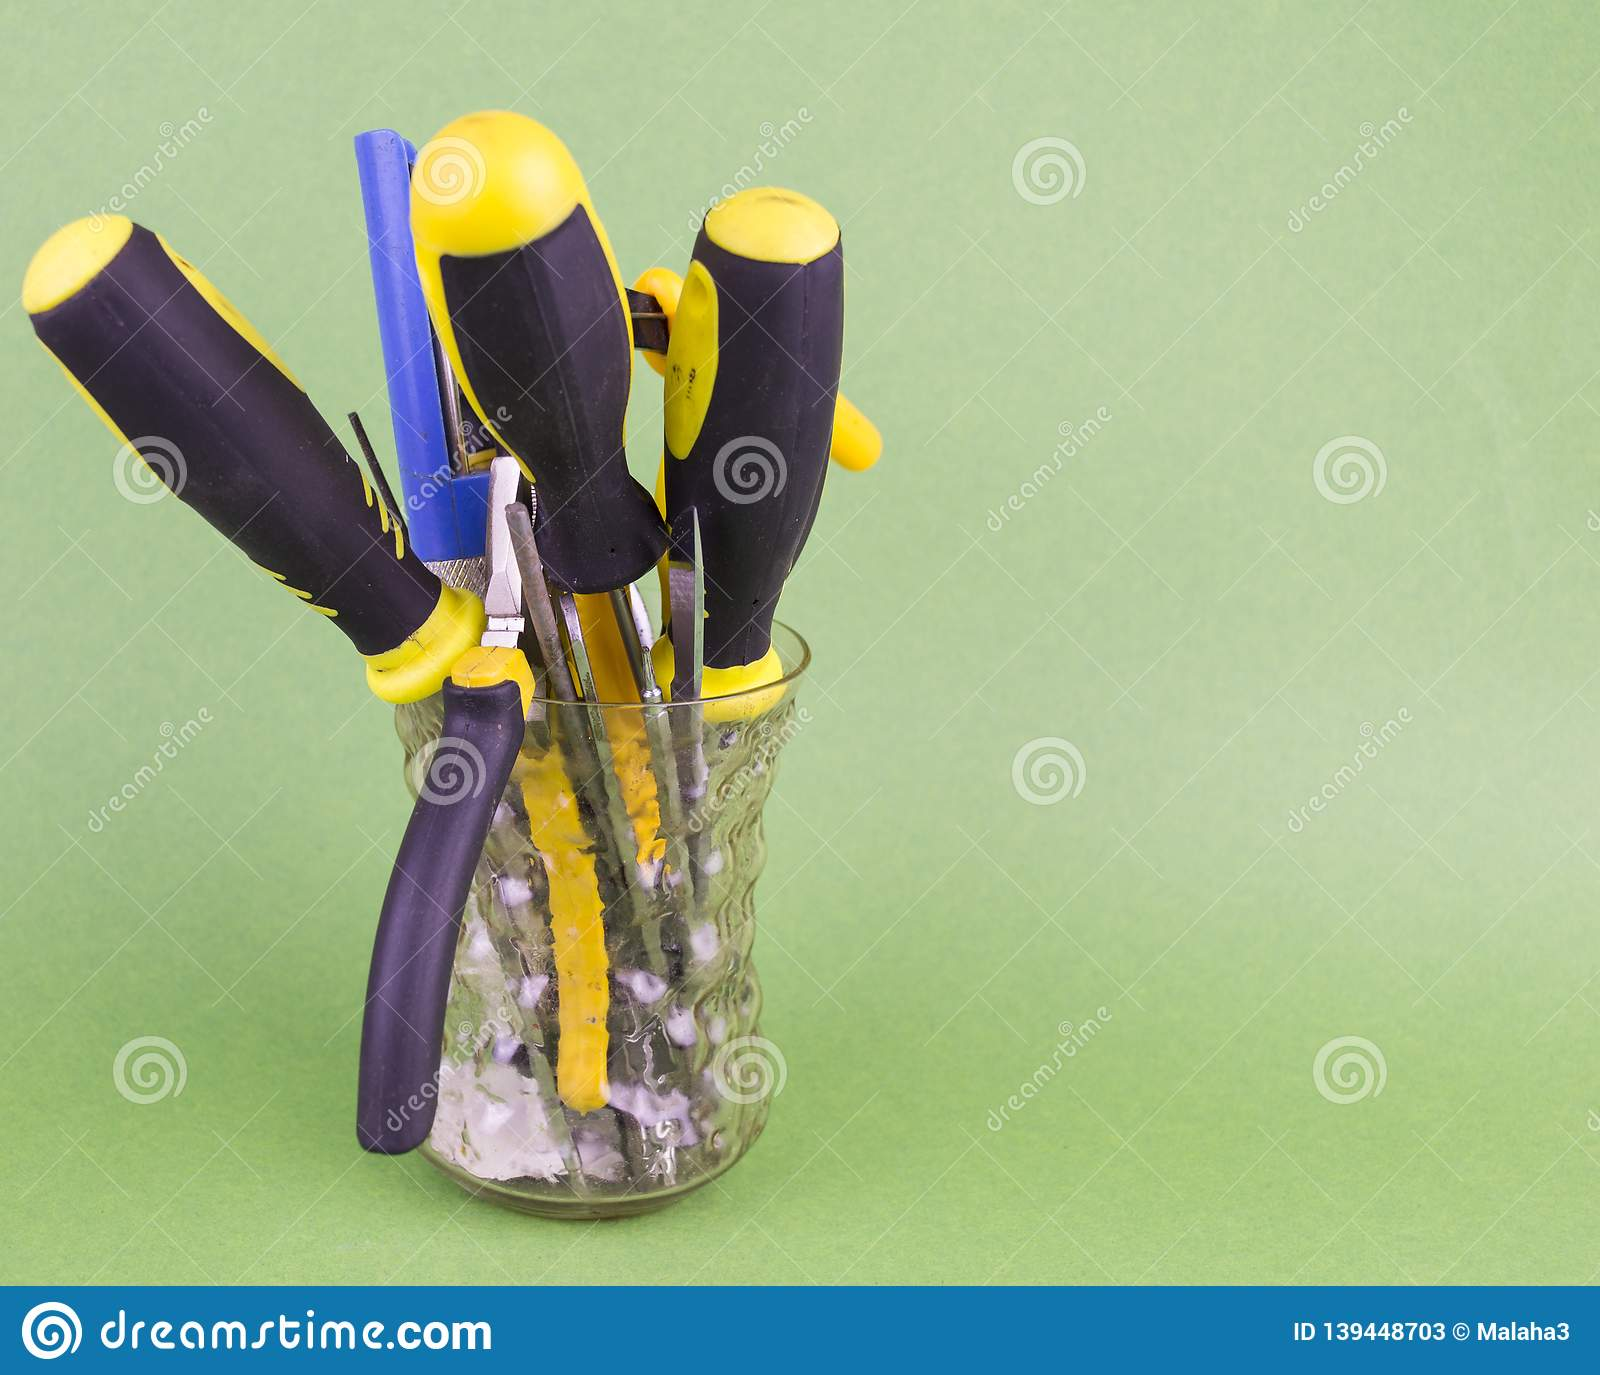 A set of tools in the glass - screwdrivers, pliers, nibs, yellow-black natfelas on a green background, there is an empty space to